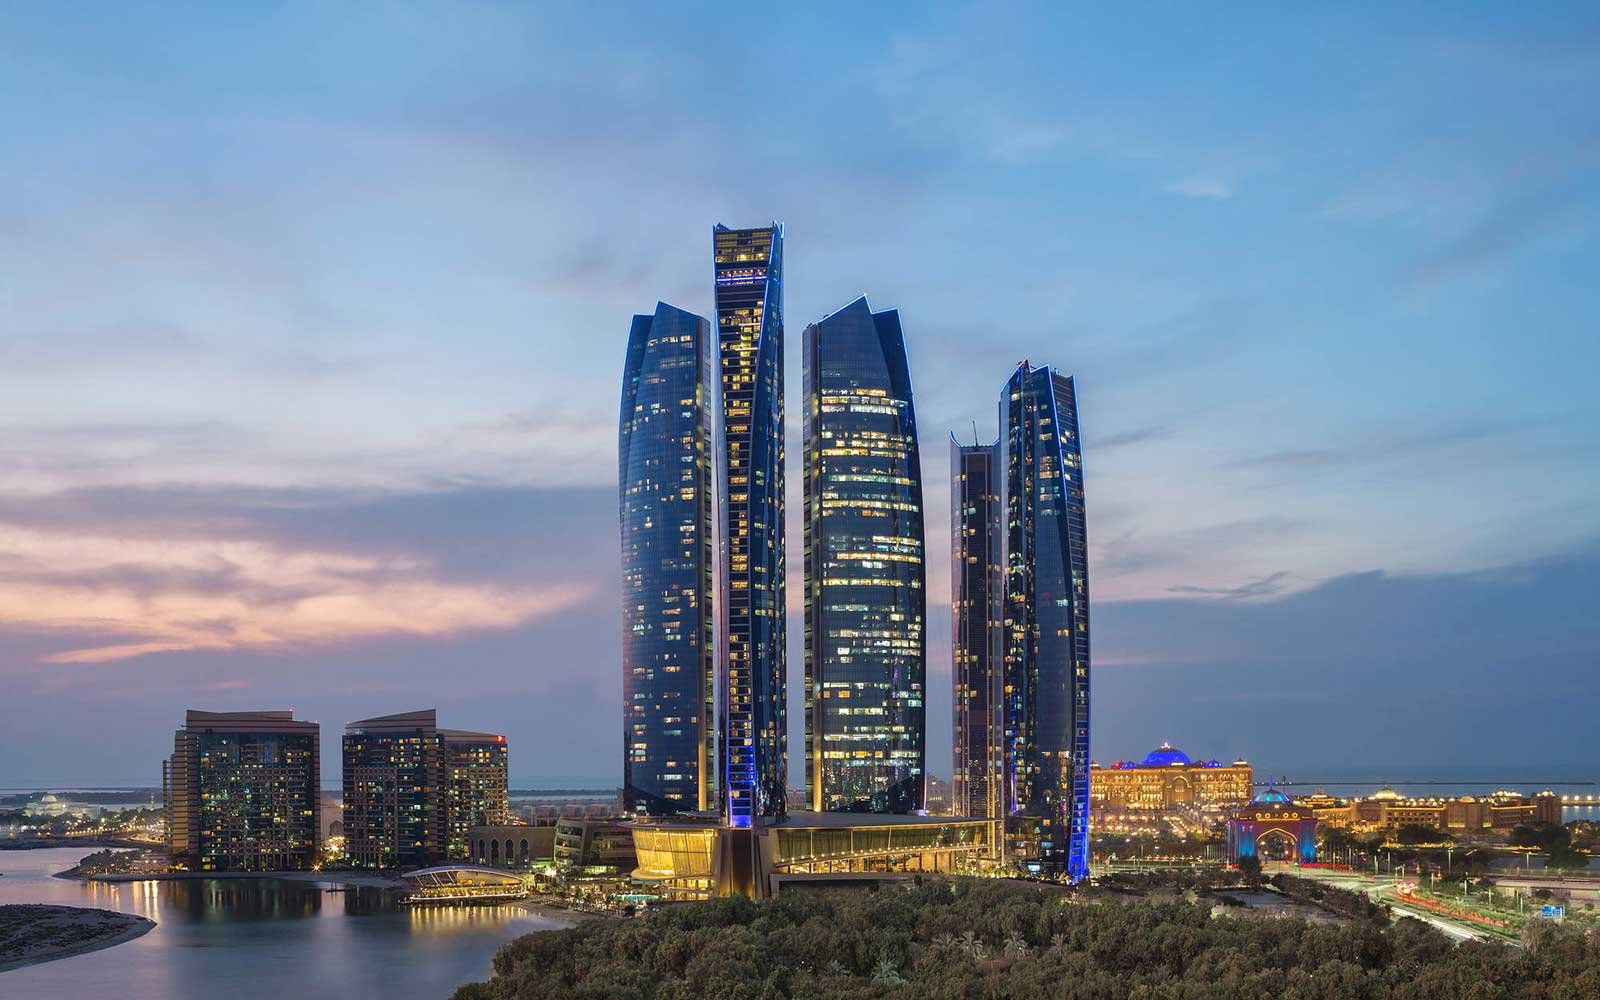 1. Jumeirah at Etihad Towers, Abu Dhabi